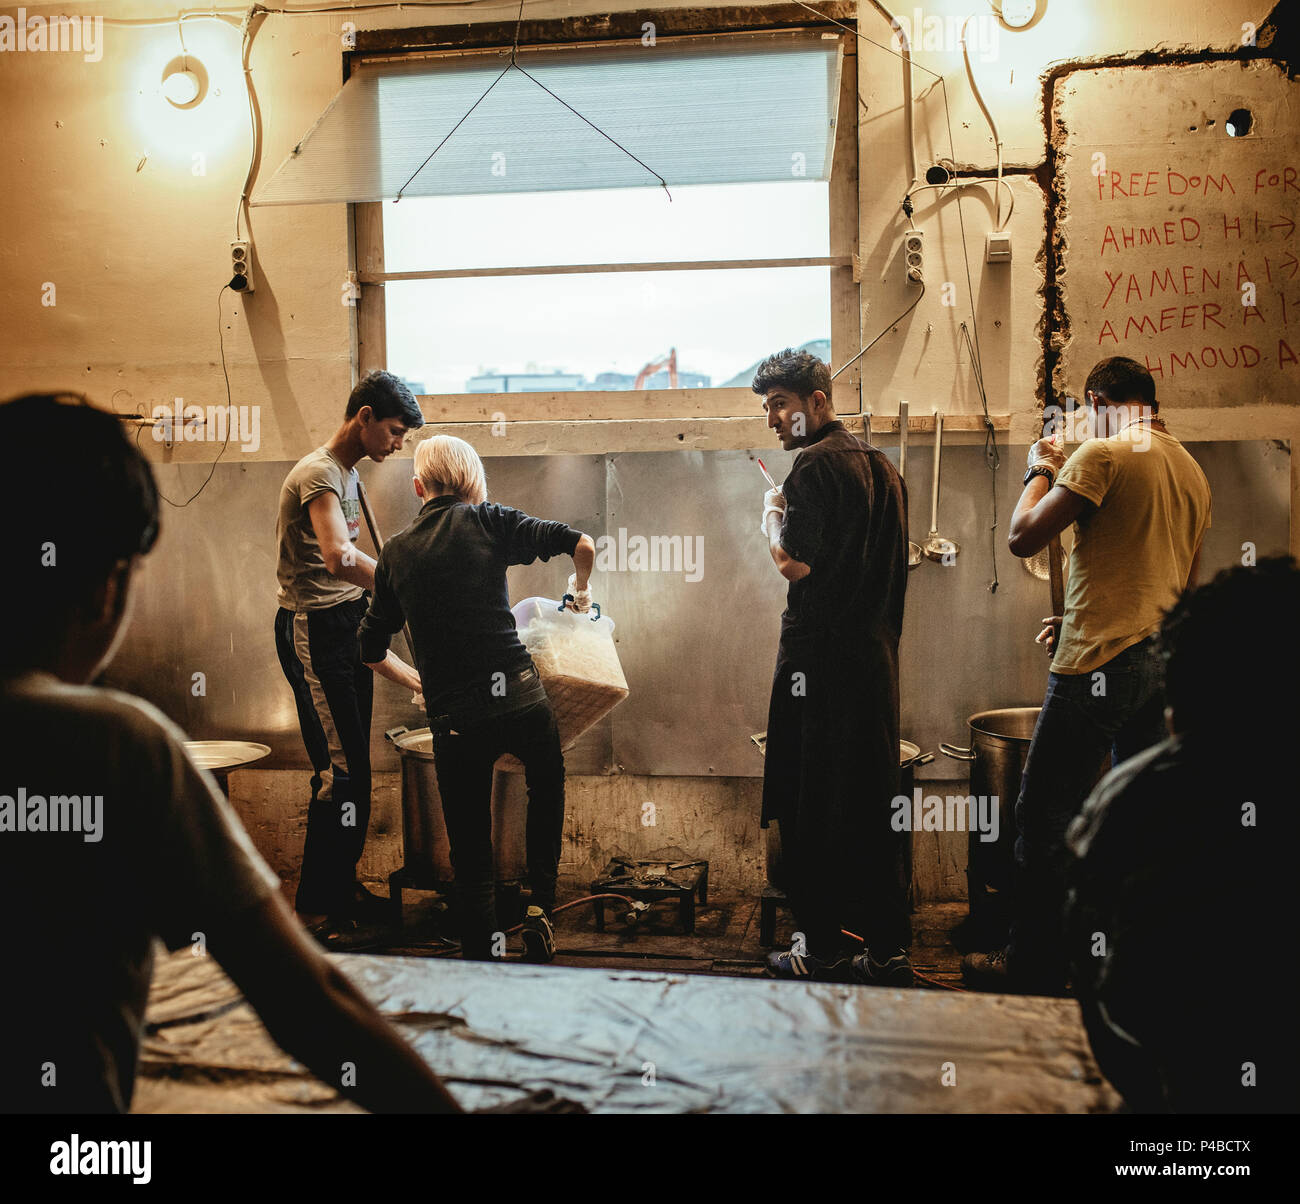 Volunteers of No Name Kitchen working in and around the warehouses in Belgrade. They organize food, clothes, firewood together with the refugees living there since 8 months, coming from all over the world. Sandra Latre, from Barcelona, cooking in the No Name Kitchen, set up by spanish volunteers in February 2017. It is working every day, they are cooking together with the refugees and give a second hot meal per day. 450 meals per day. Sandra decided to volunteer and contacted Soul Welders. - Stock Image